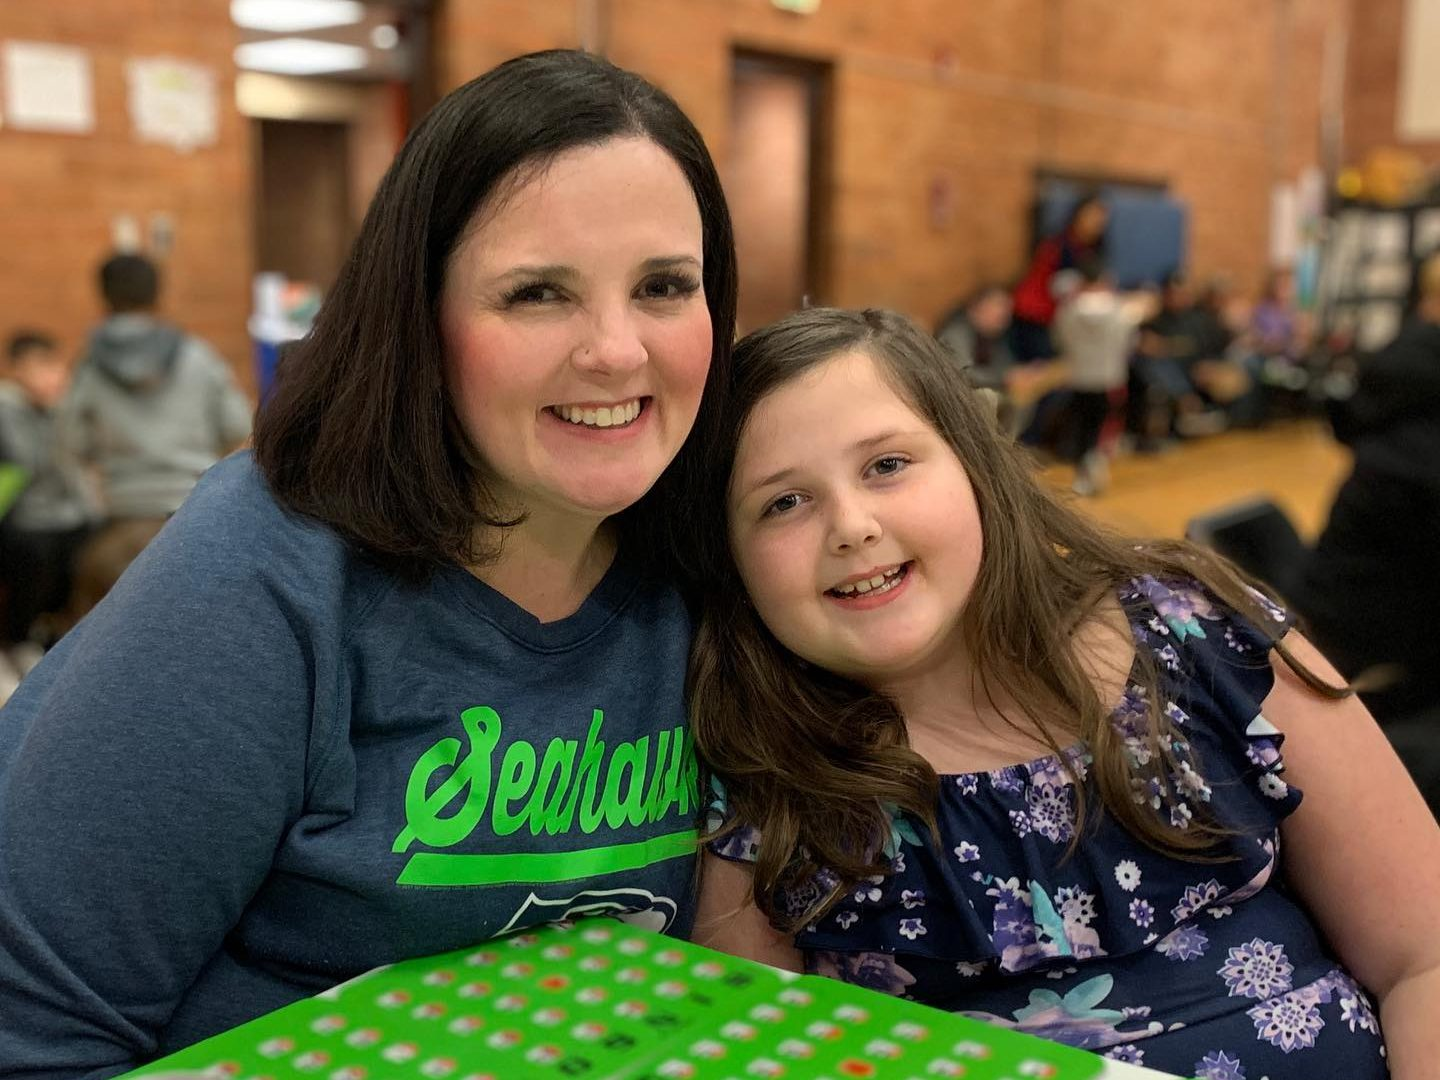 Mother and daughter at elementary school bingo night smiling